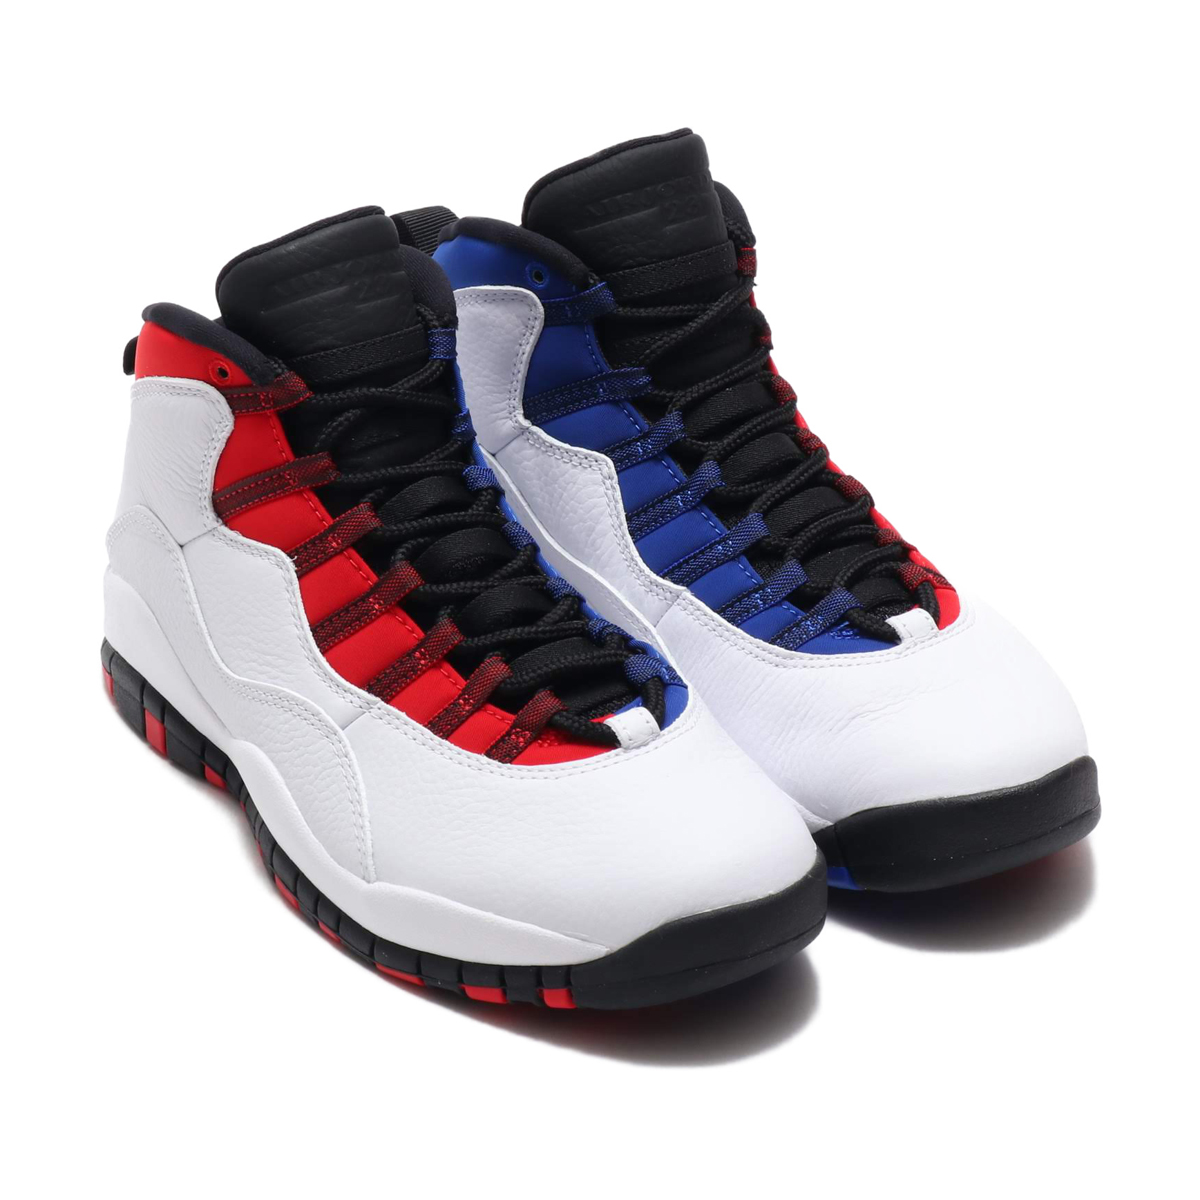 0d9e666e6e NIKE AIR JORDAN 10 RETRO (nostalgic Nike Air Jordan 10)  (WHITE/BLACK-UNIVERSITY RED-HYPER ROYAL) 18SP-S